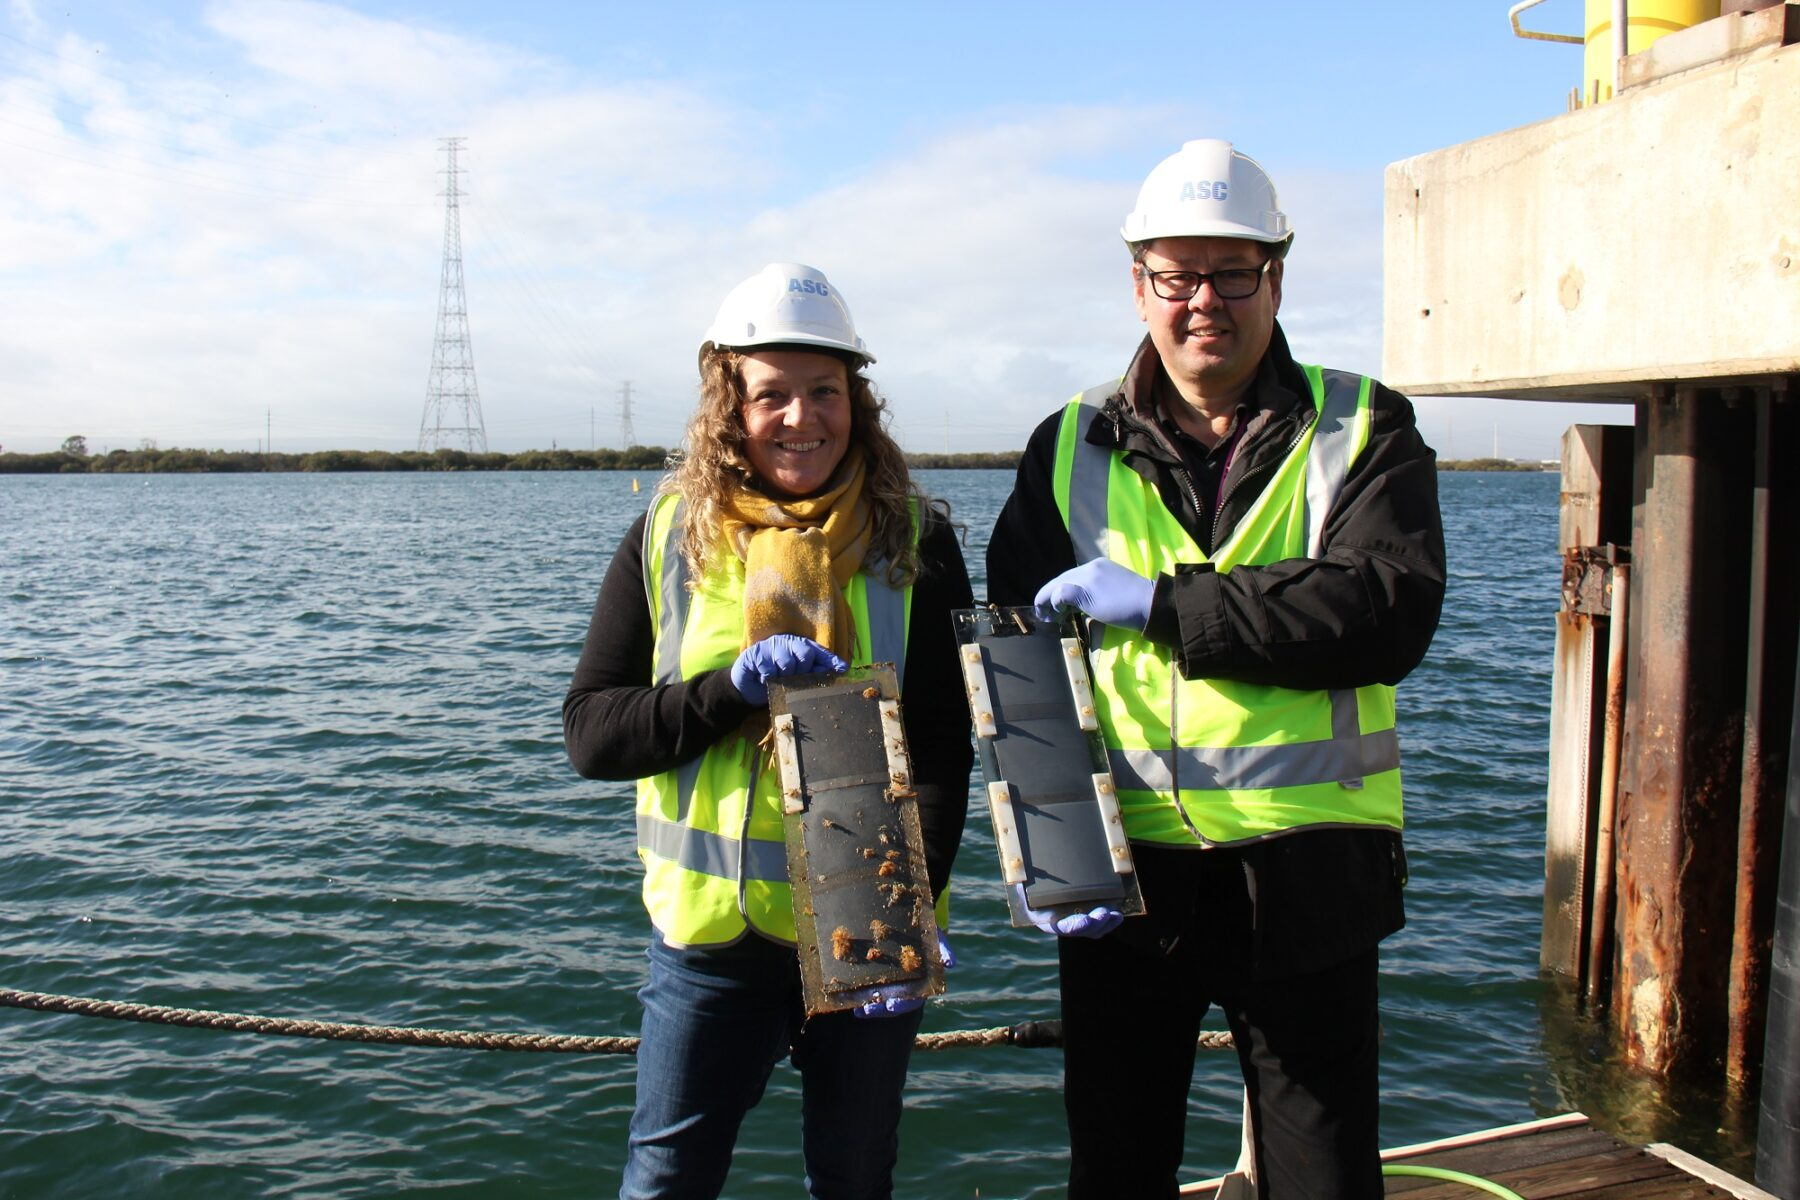 Associate Professor Sophie Leterme and Professor Mats Andersson at ASC reviewing the research. Image credit: ASC